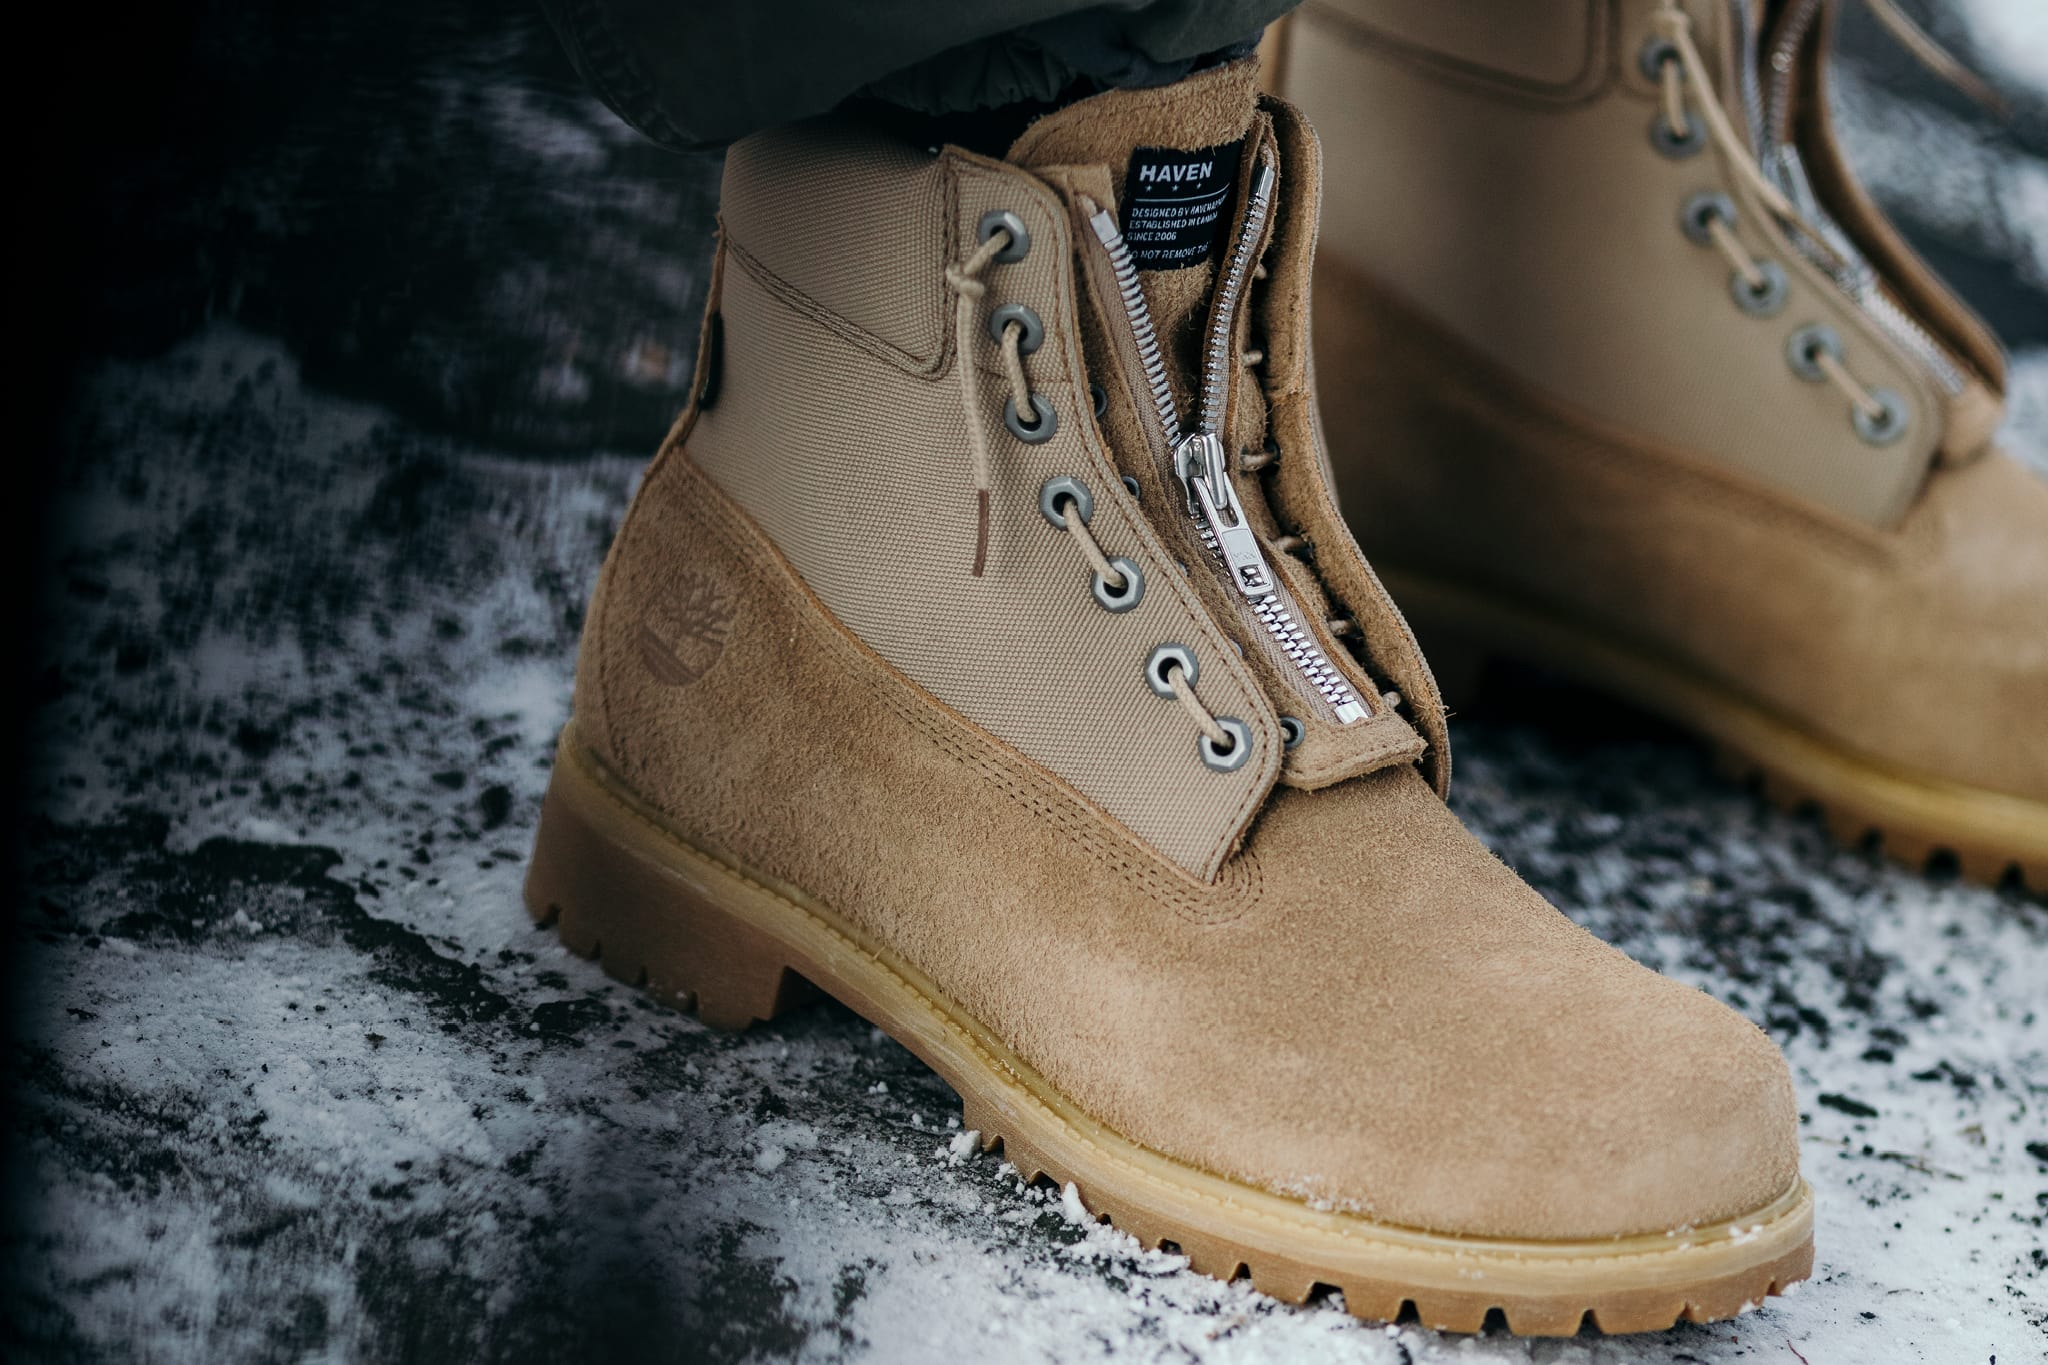 e3b311788dc HAVEN / Timberland® GORE-TEX® 6-Inch Boots Editorial   HAVEN